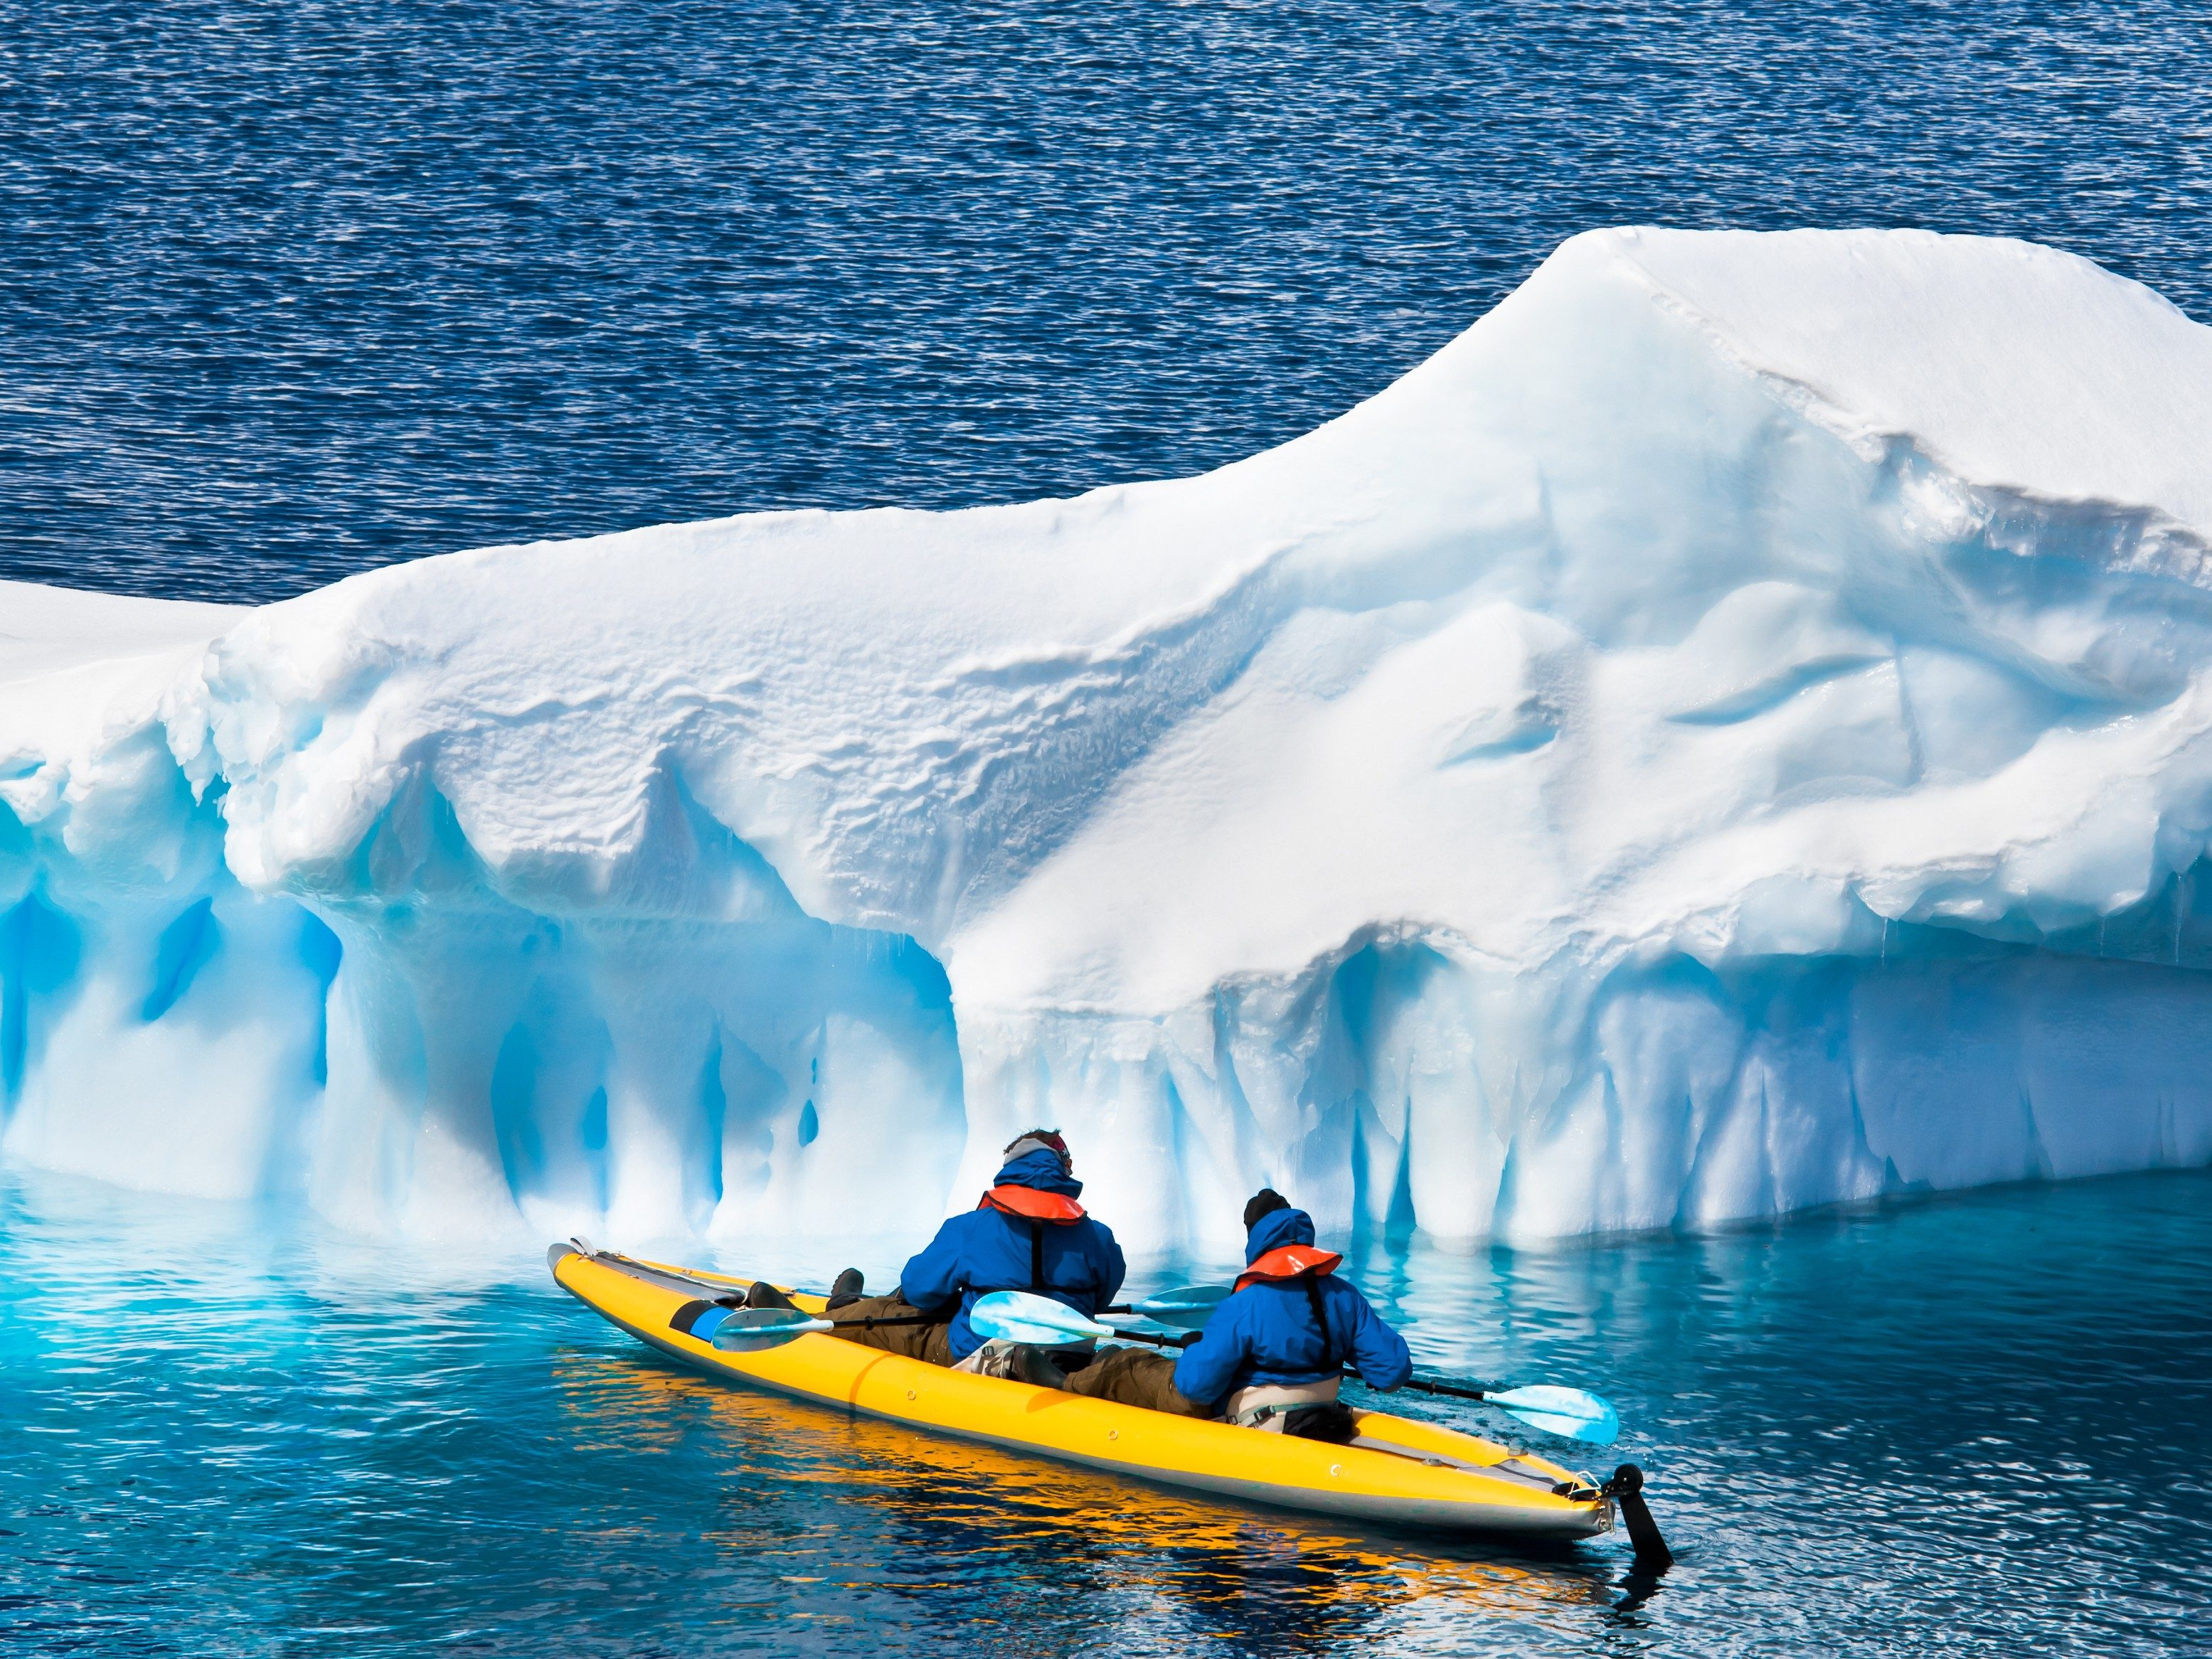 2. You Can Paddle Past Icebergs